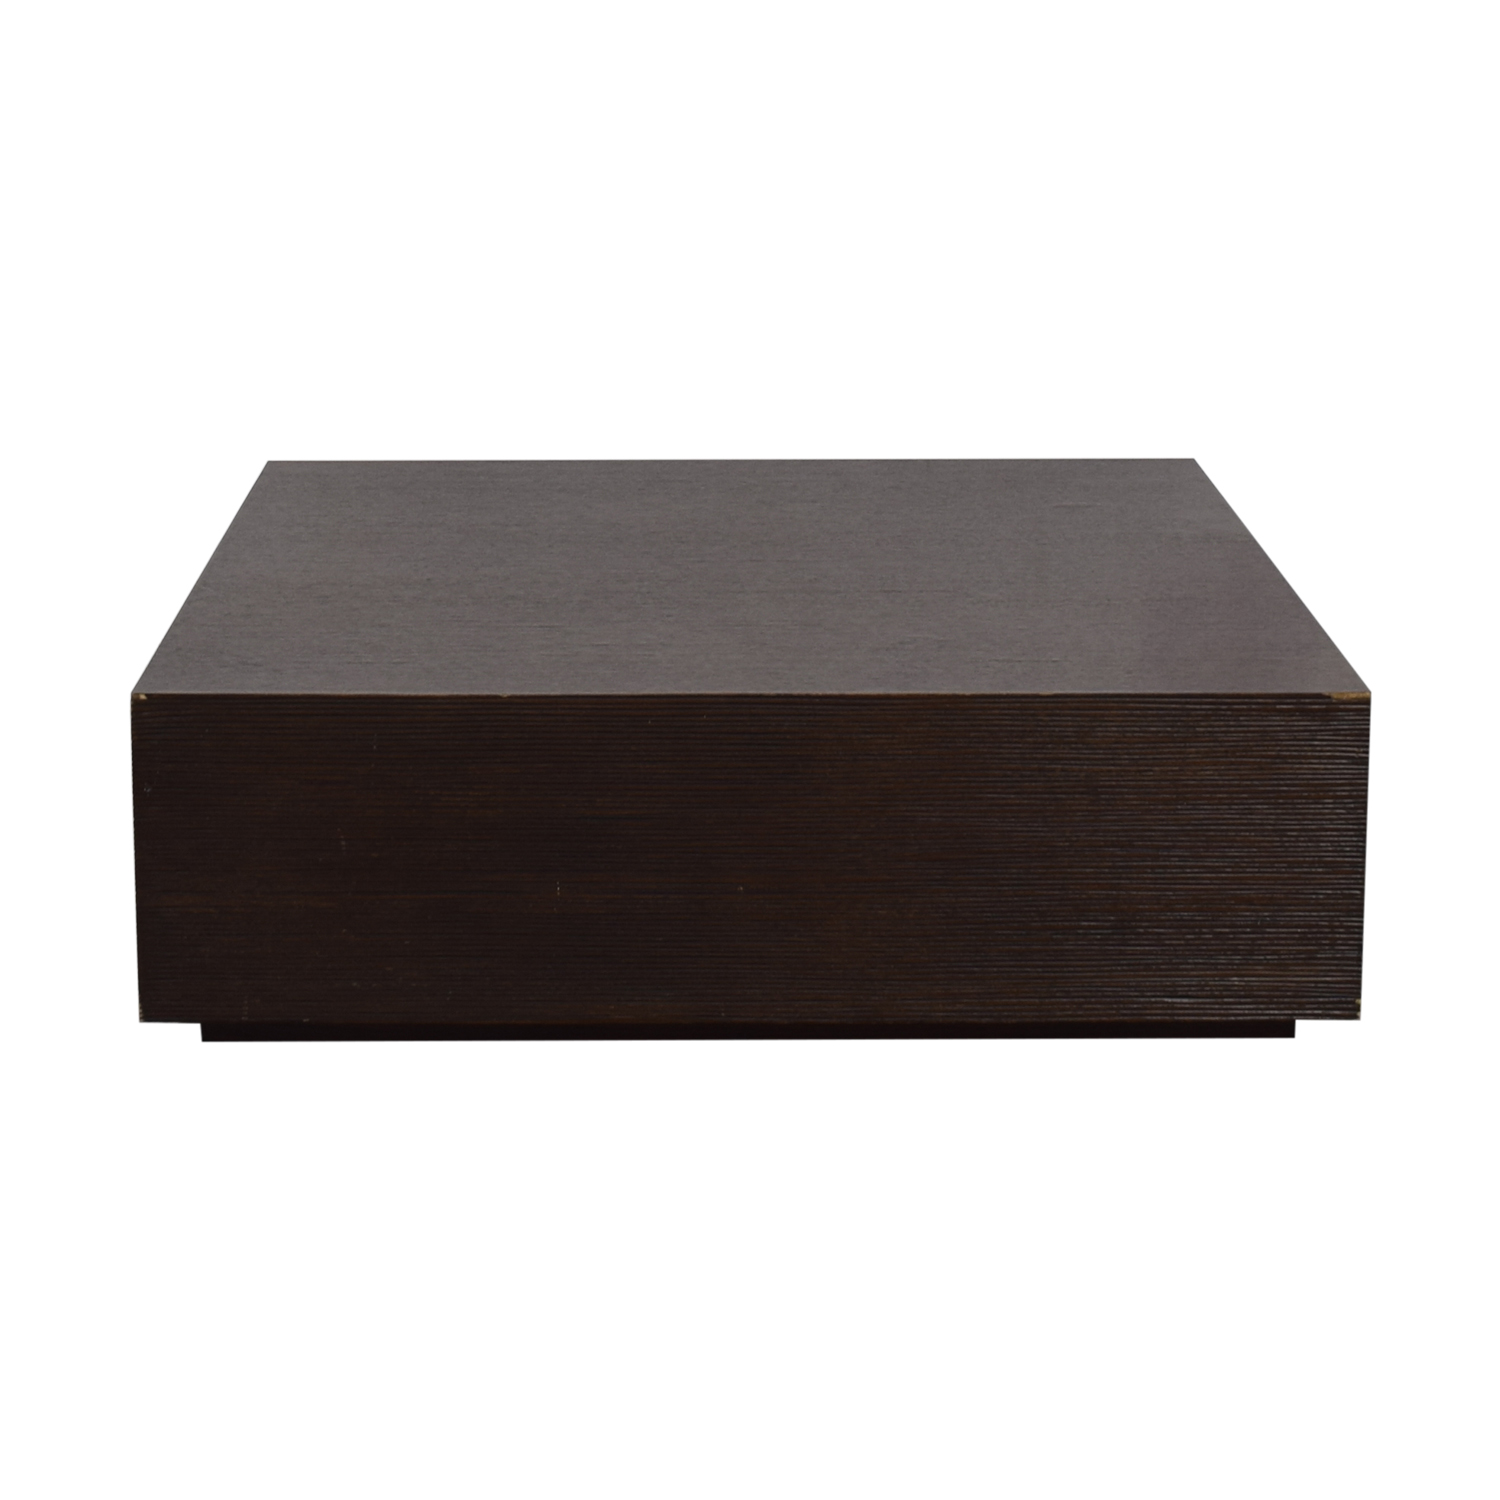 Espresso Wood Coffee Table dimensions